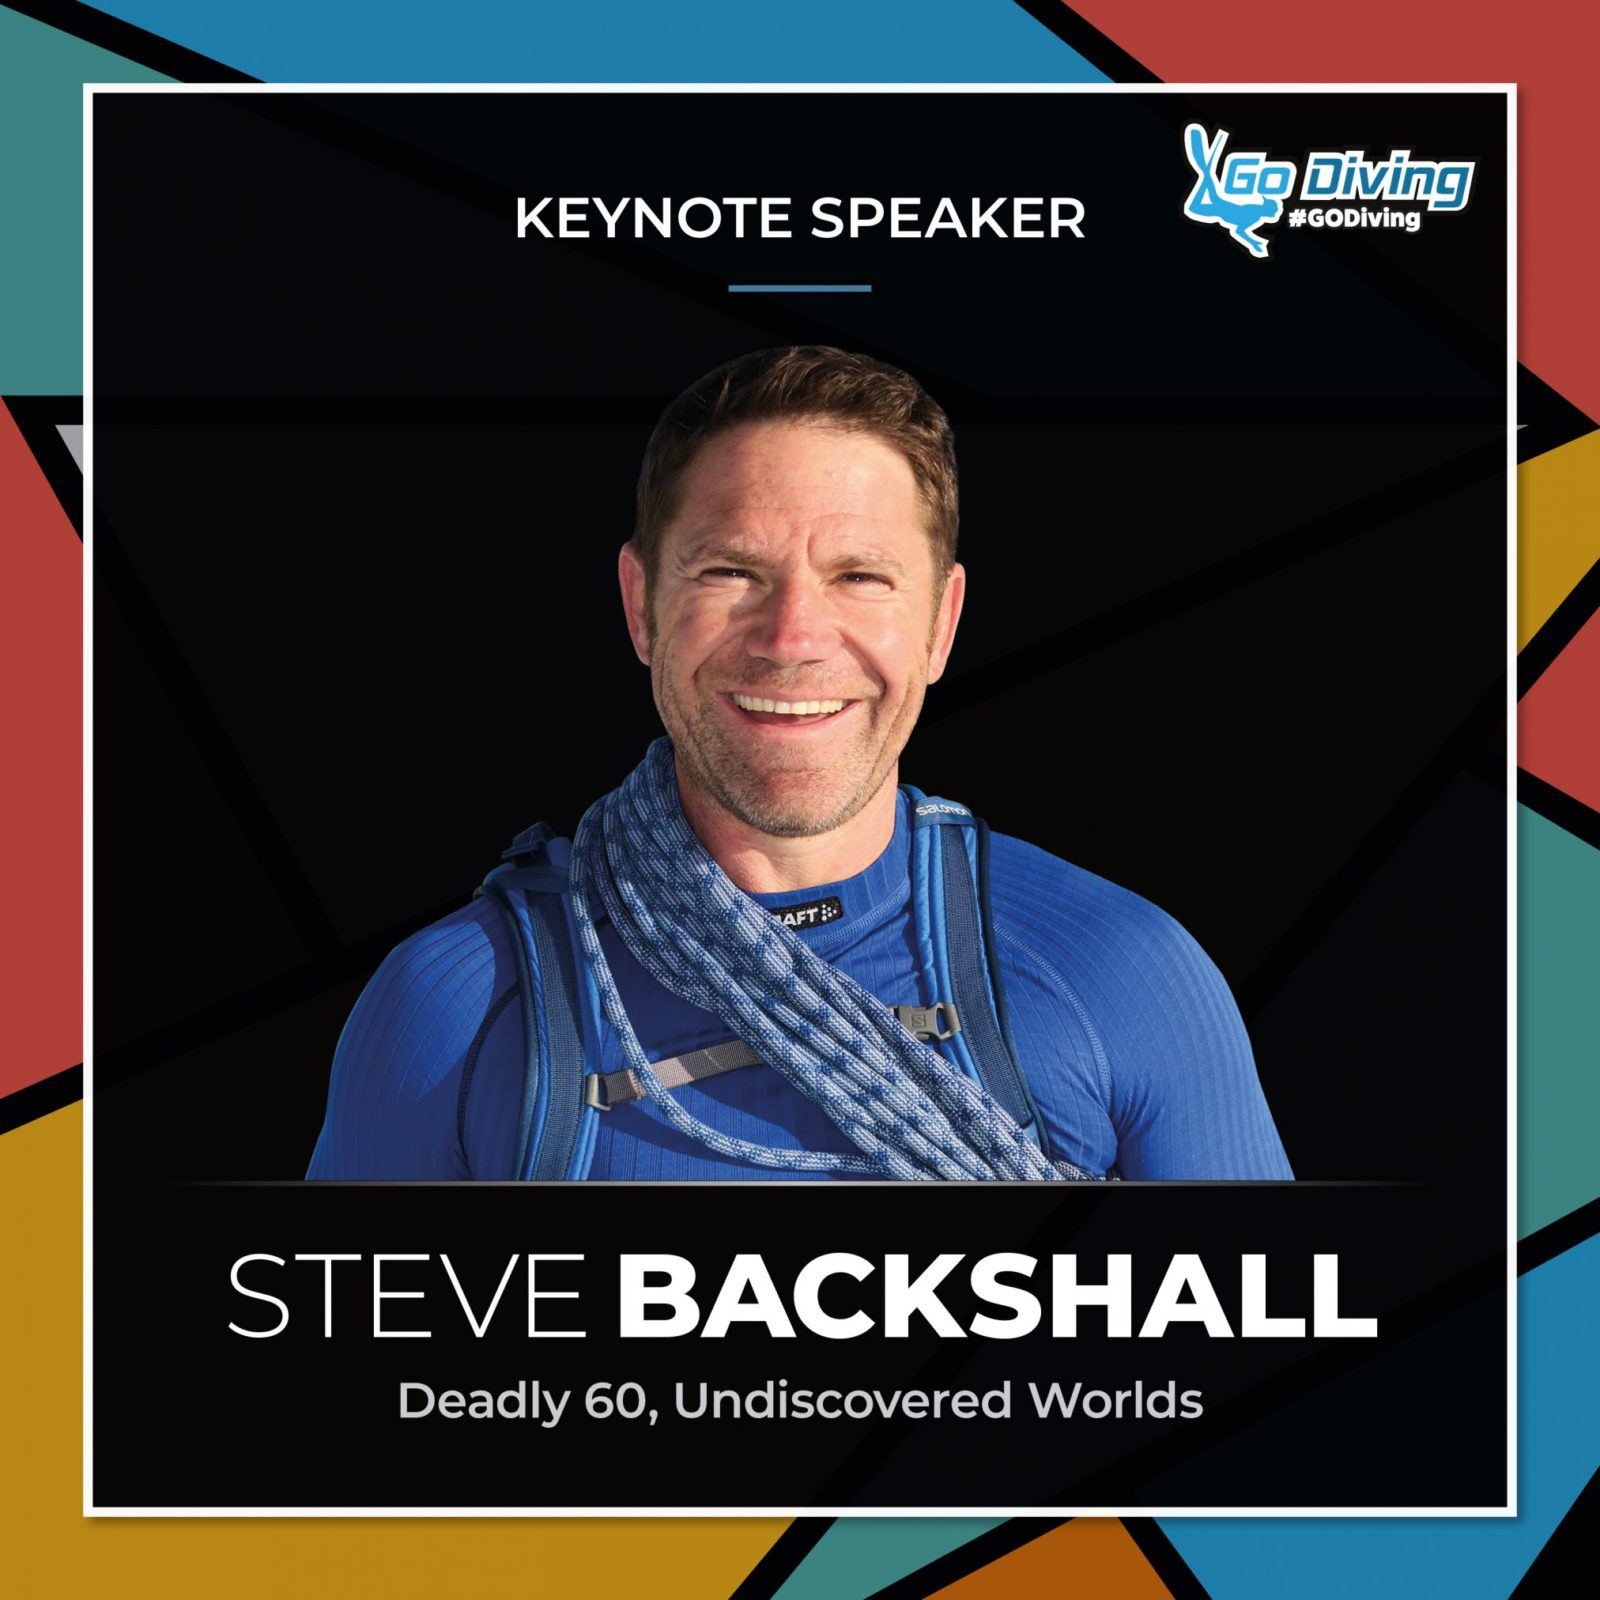 GO Diving Show Main Stage Top 5 - Number 1 - Steve Backshall 1